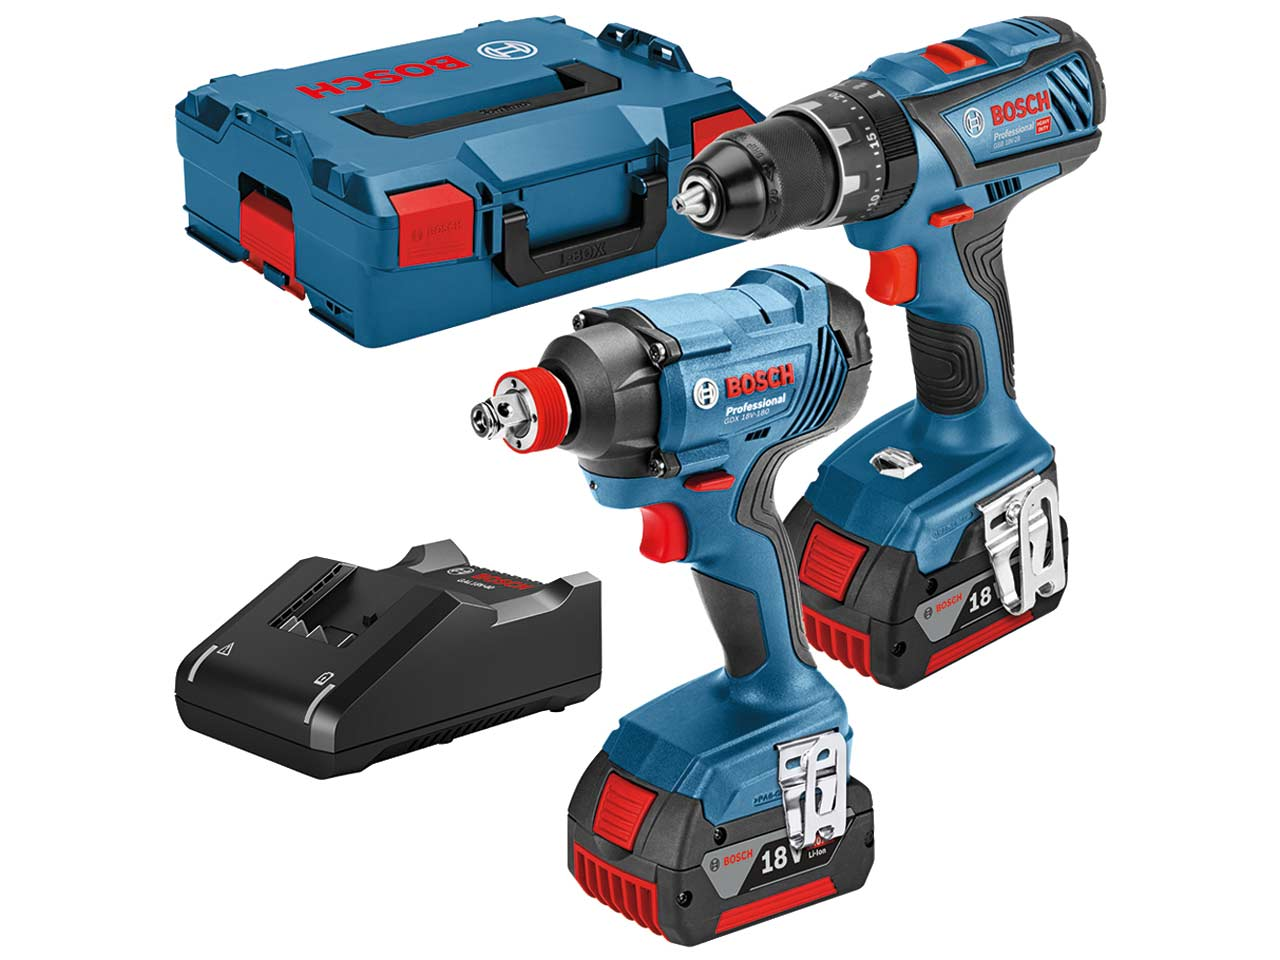 Bosch Professional Combi Drill & Impact Driver Twin Pack GDX18V-180+GSB18V-28   13-mm full-metal chuck makes it highly durable, ensuring less wear and longer use.   toolforce.ie